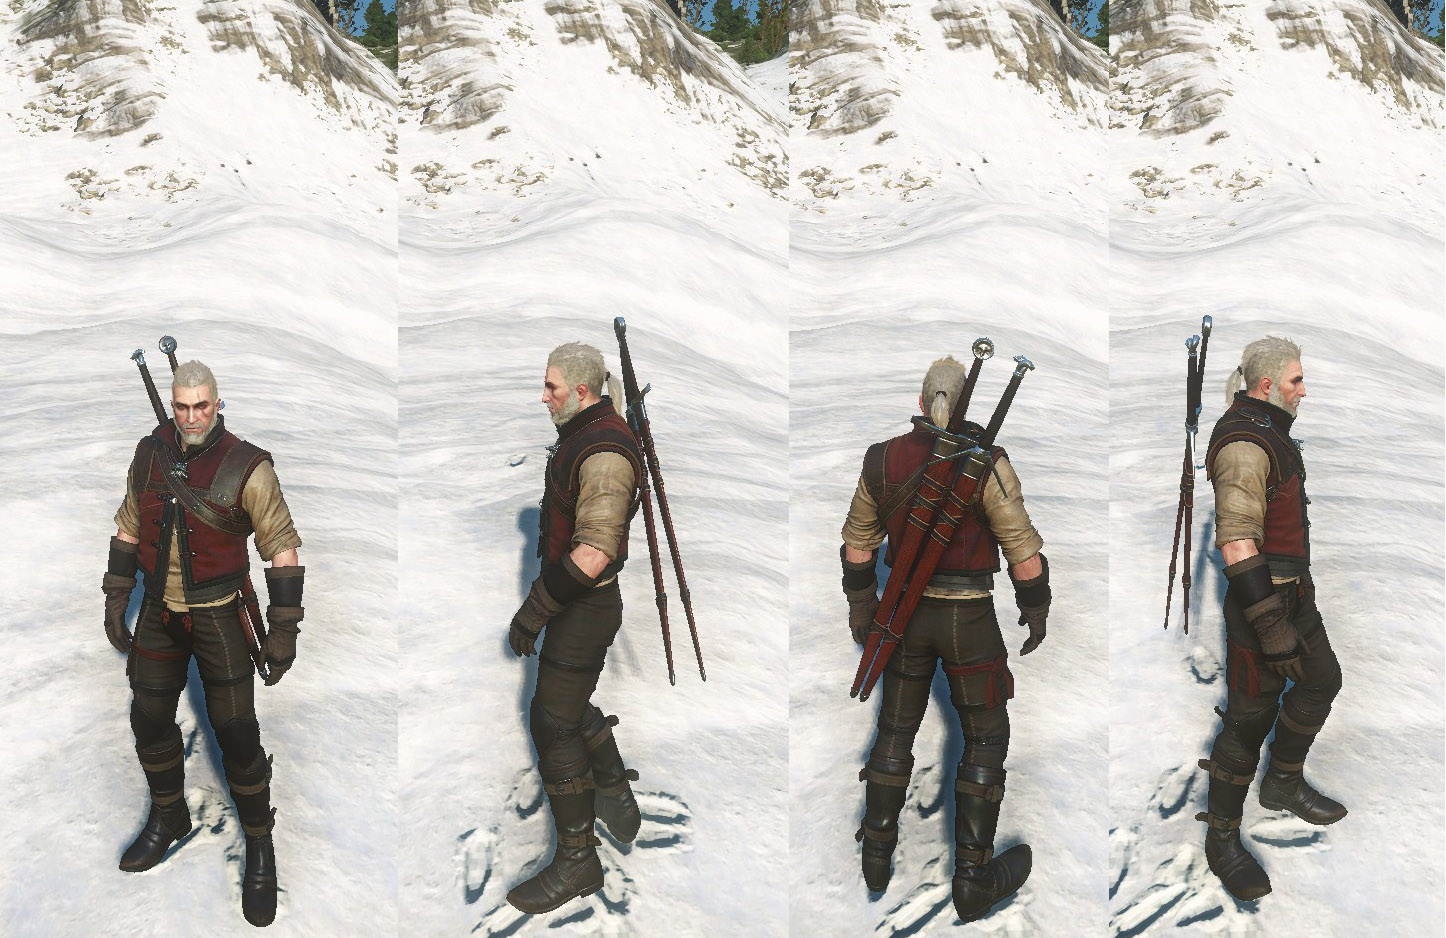 Witcher 3 Armor Wolf School Gear